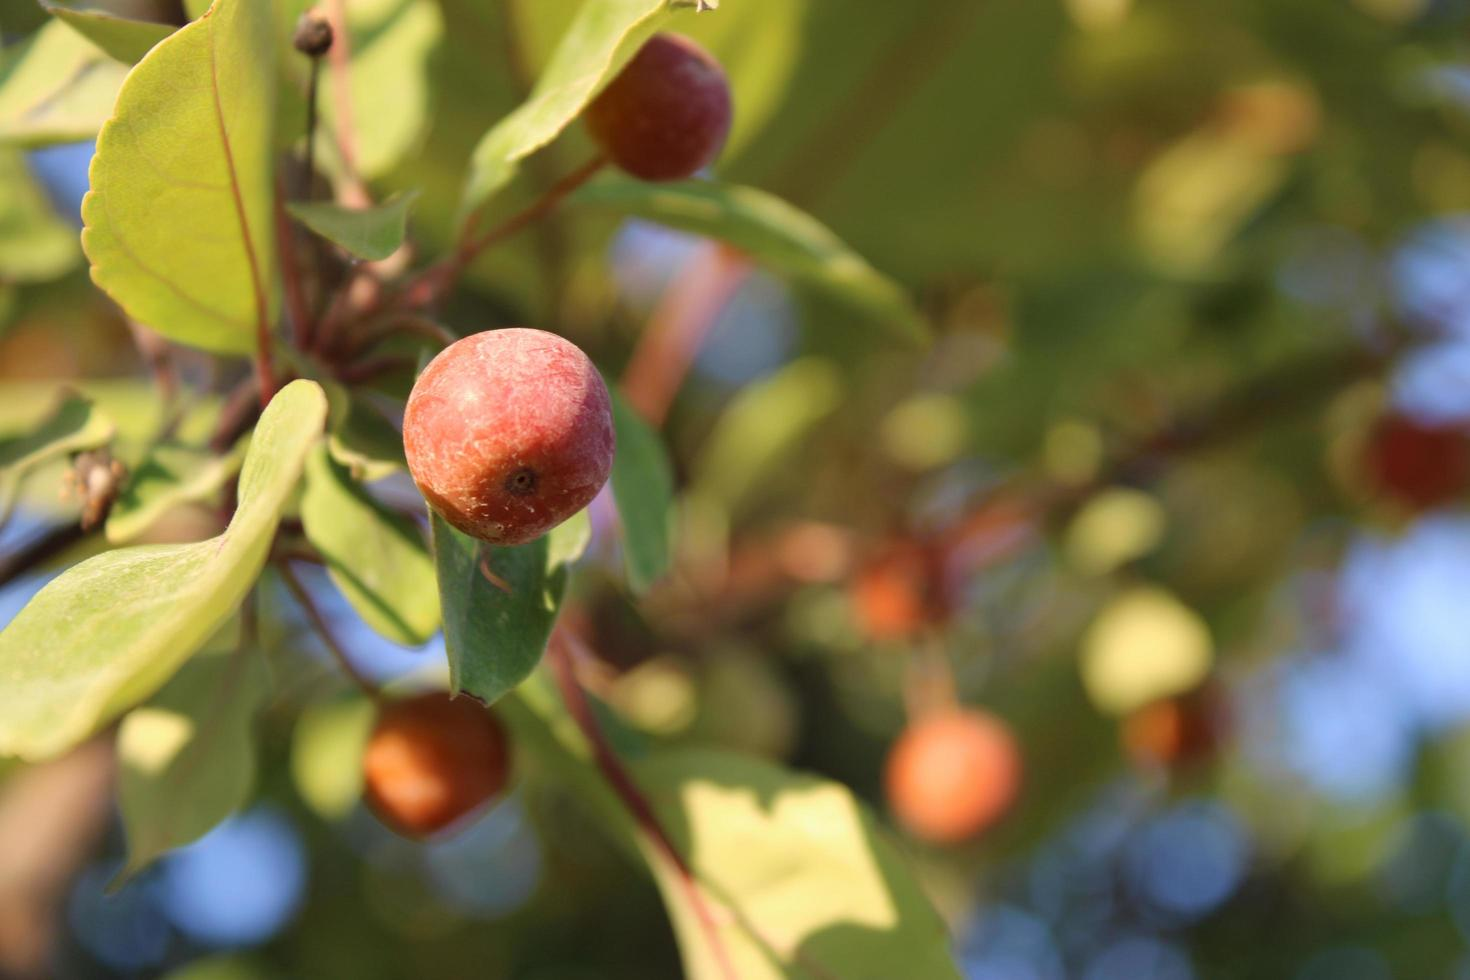 Crabapple fruits with macro details photo